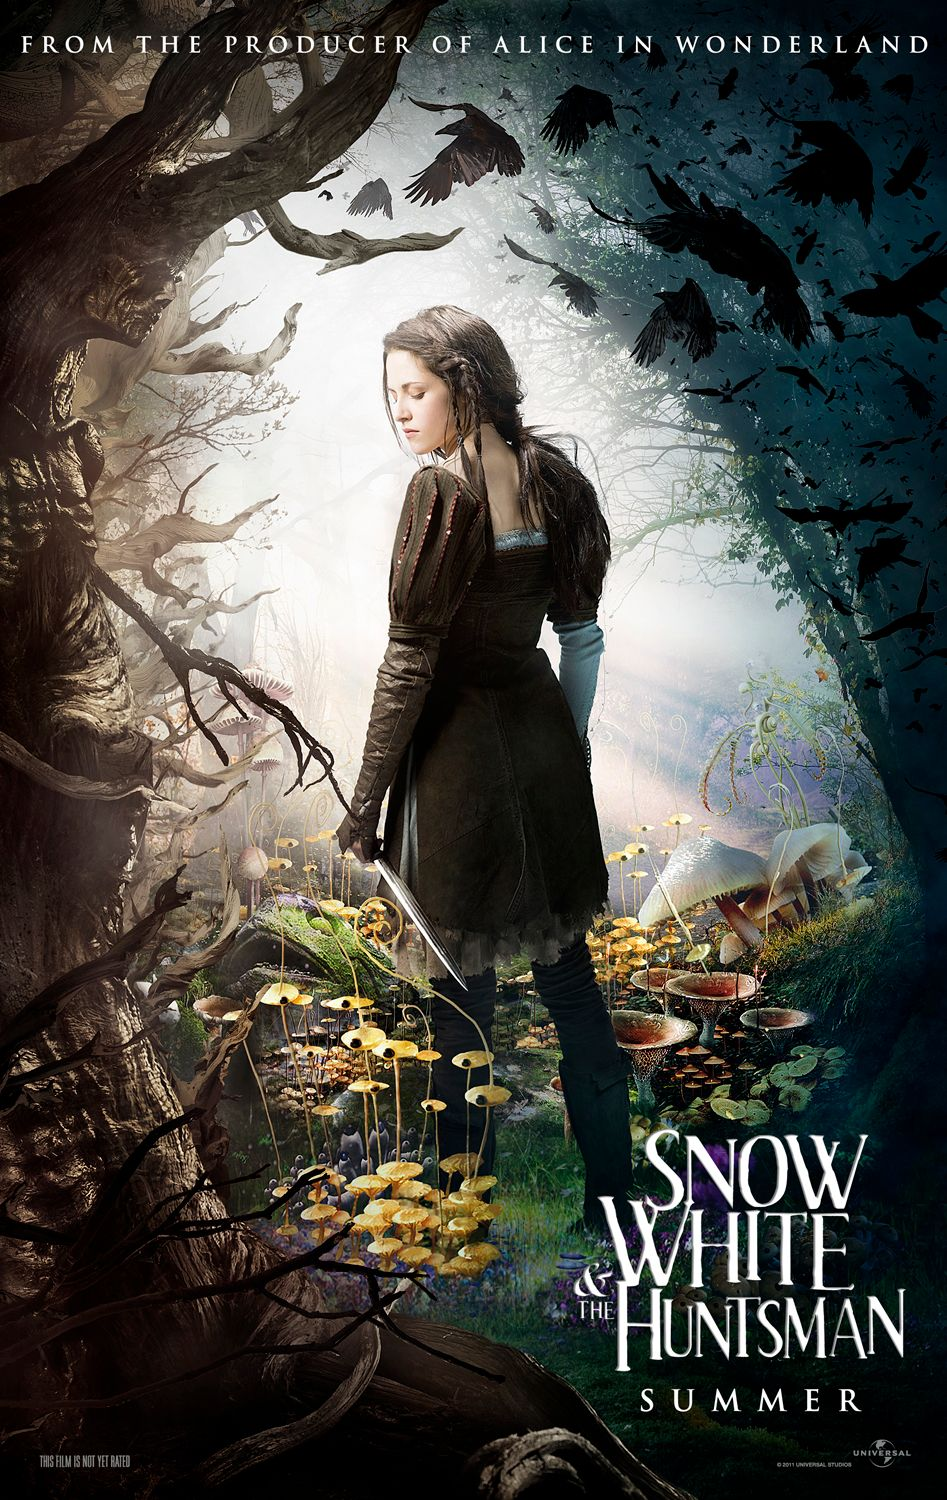 SNOW WHITE AND THE HUNTSMAN Trailer and Posters | Collider